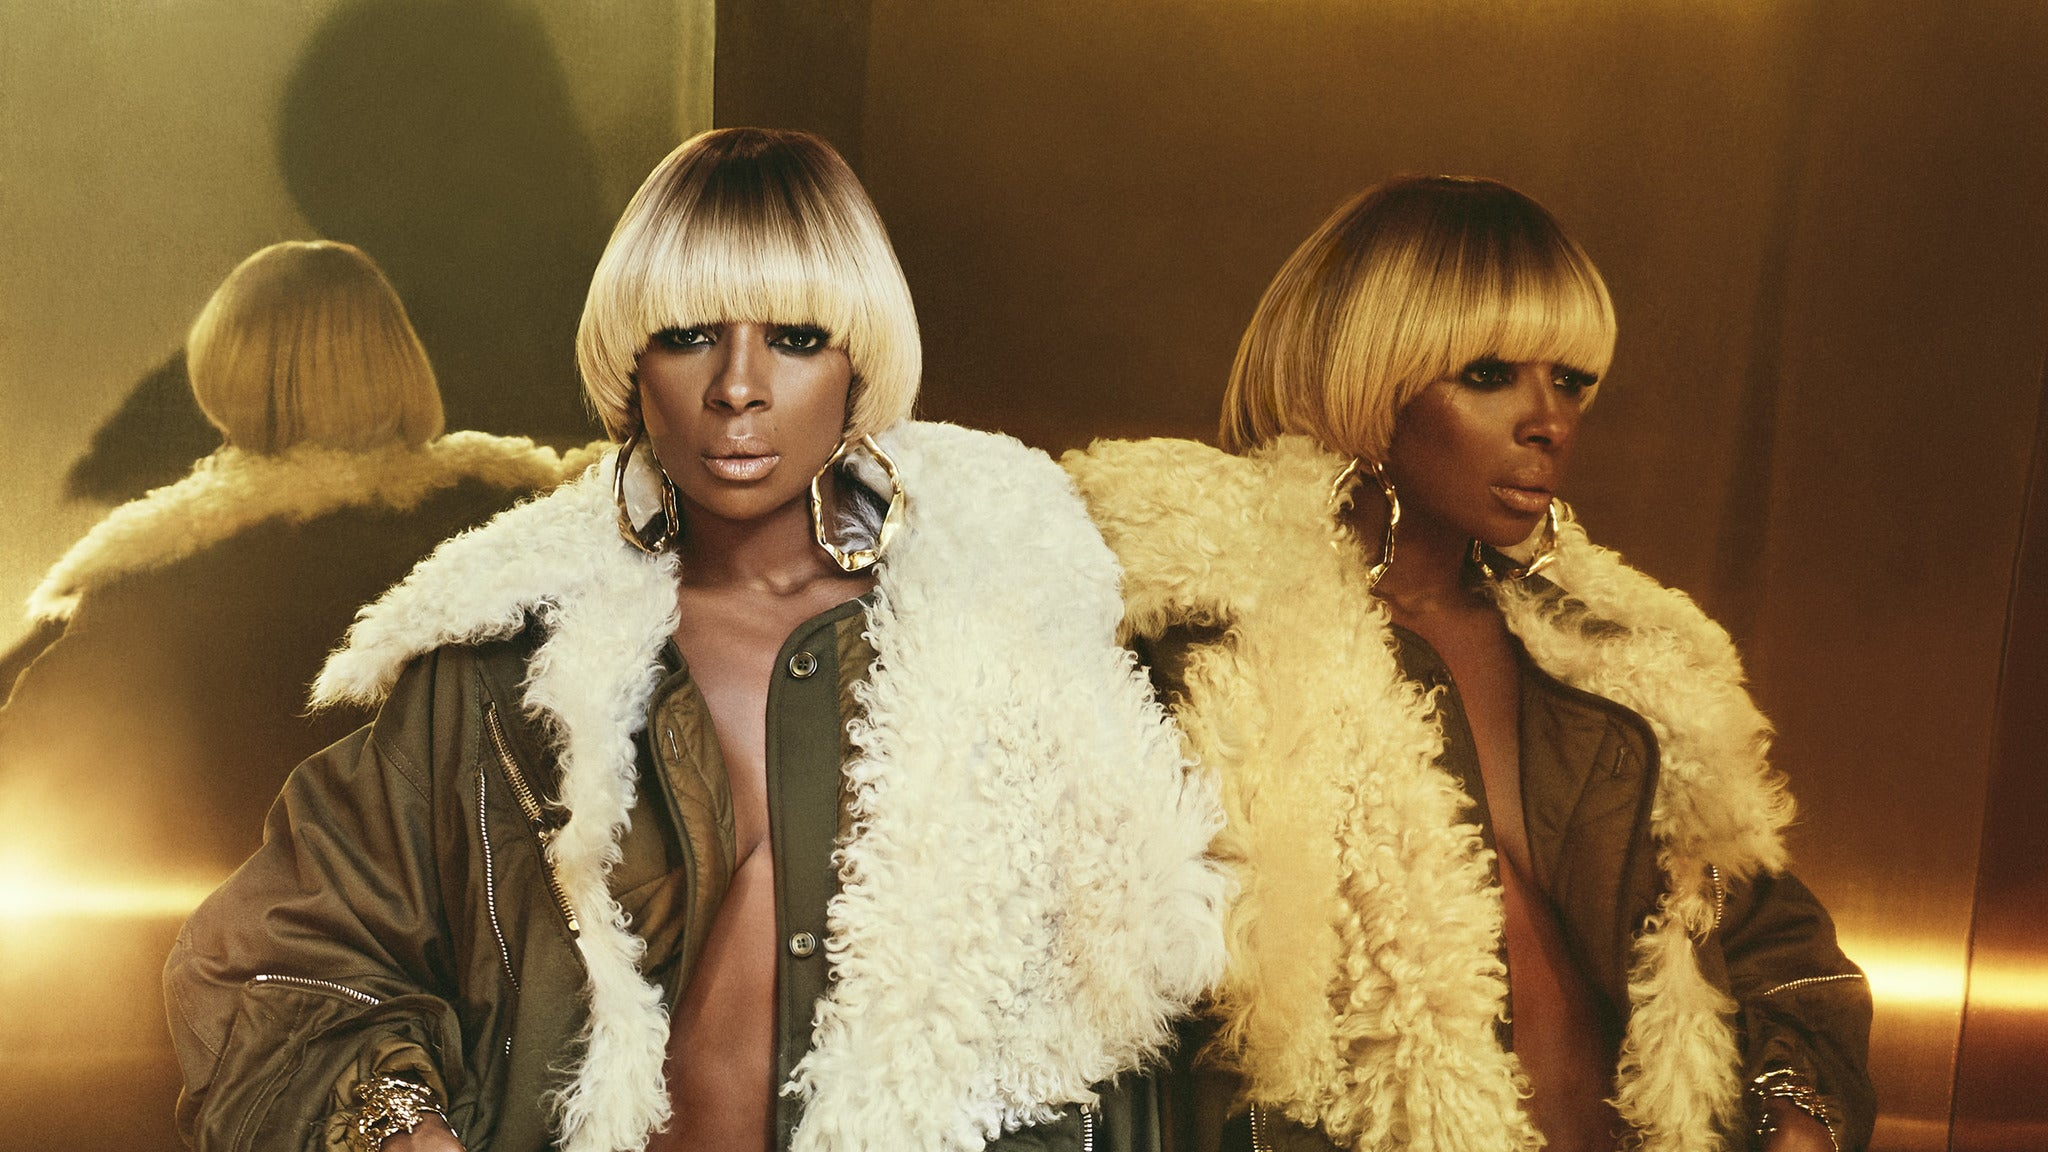 SORRY, THIS EVENT IS NO LONGER ACTIVE<br>Mary J. Blige: Strength of a Woman Tour - Sugar Land, TX 77479